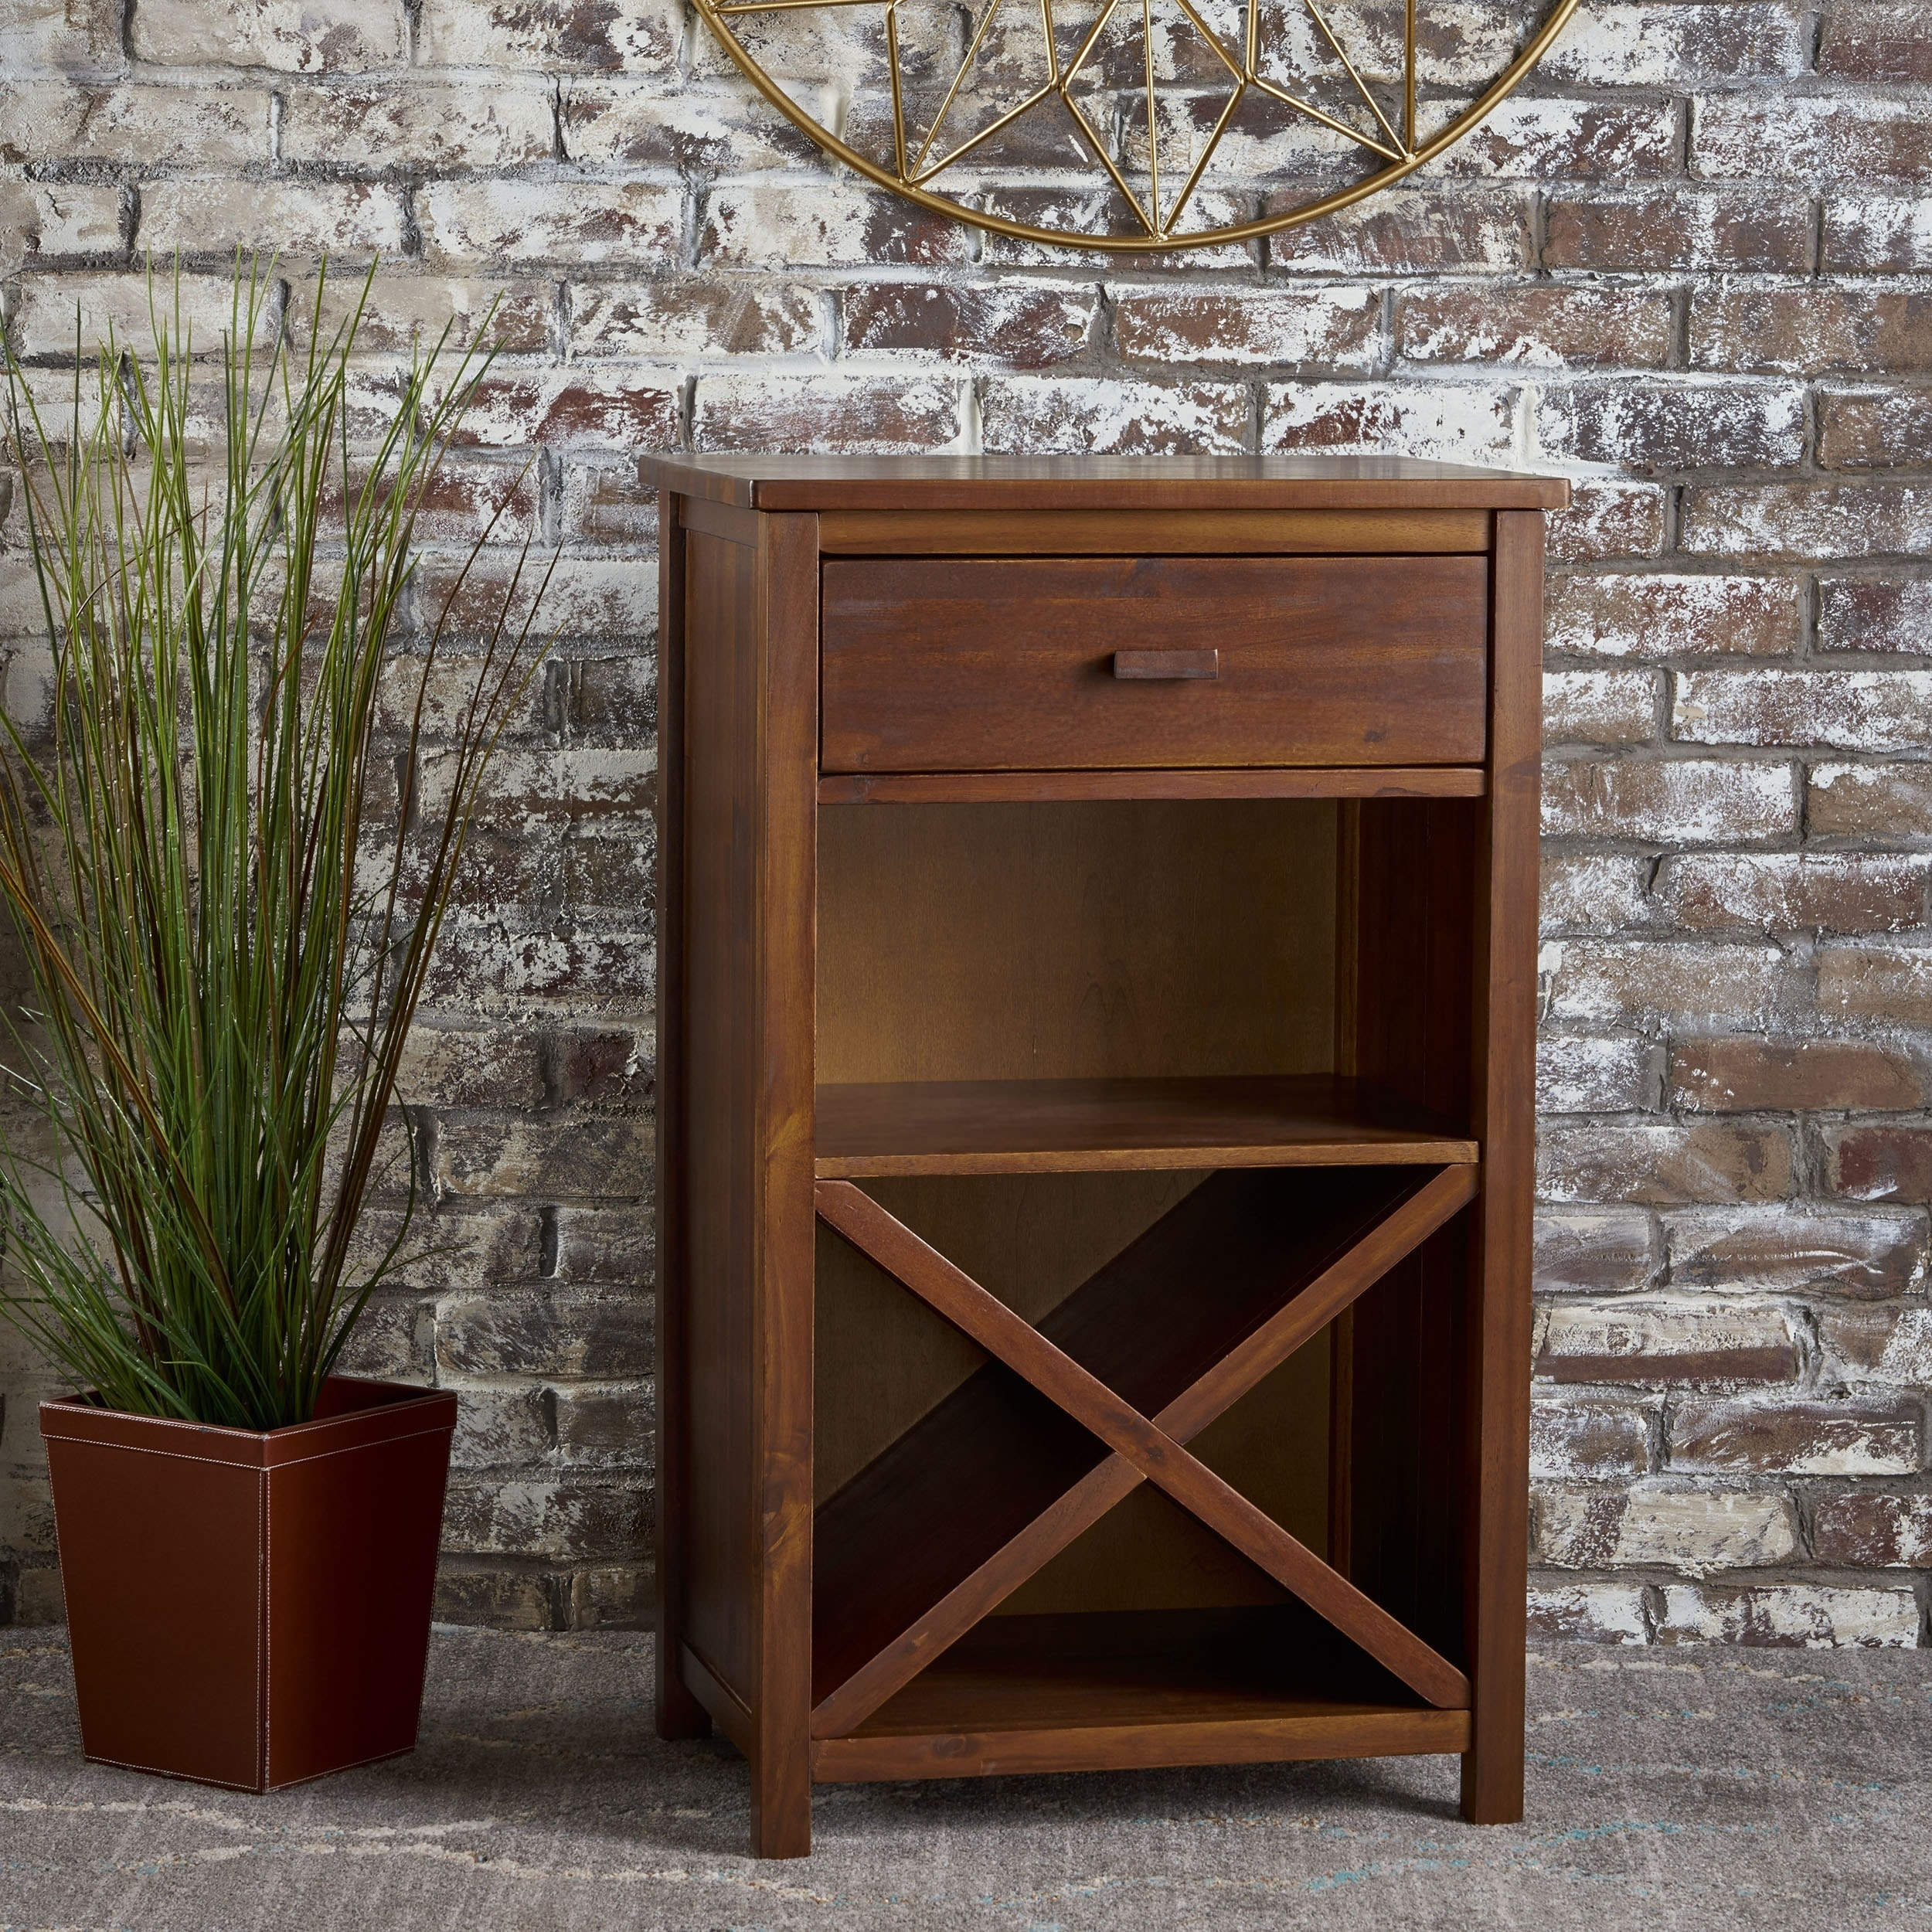 Admirable Clover Farmhouse Acacia Wood Bar Cabinet By Christopher Knight Home Home Interior And Landscaping Transignezvosmurscom